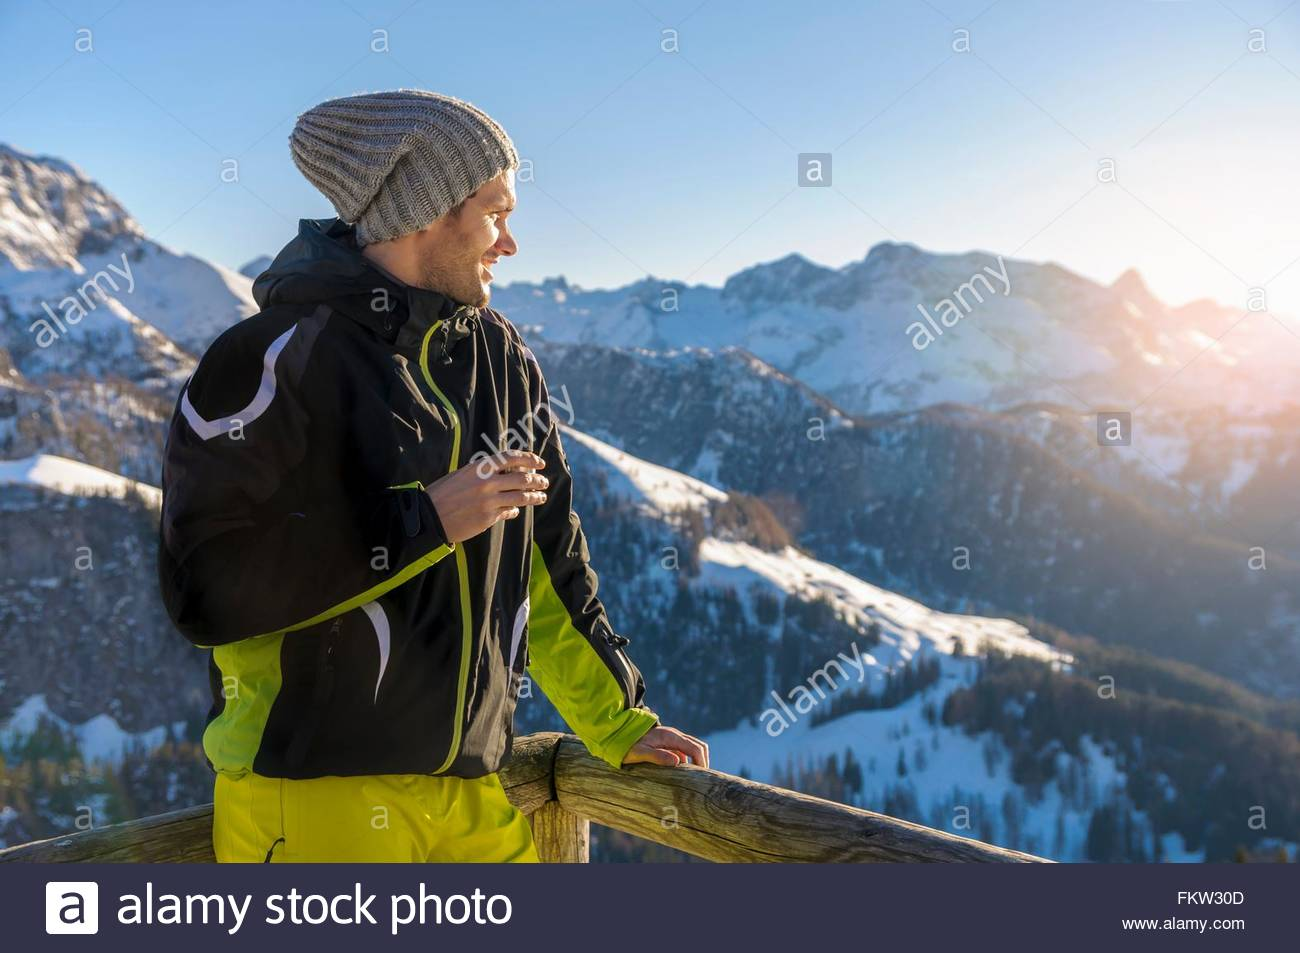 Mid adult man on mountain wearing ski suit and knit hat looking away at view smiling, Jenner, Berchtesgadener, Germany - Stock Image